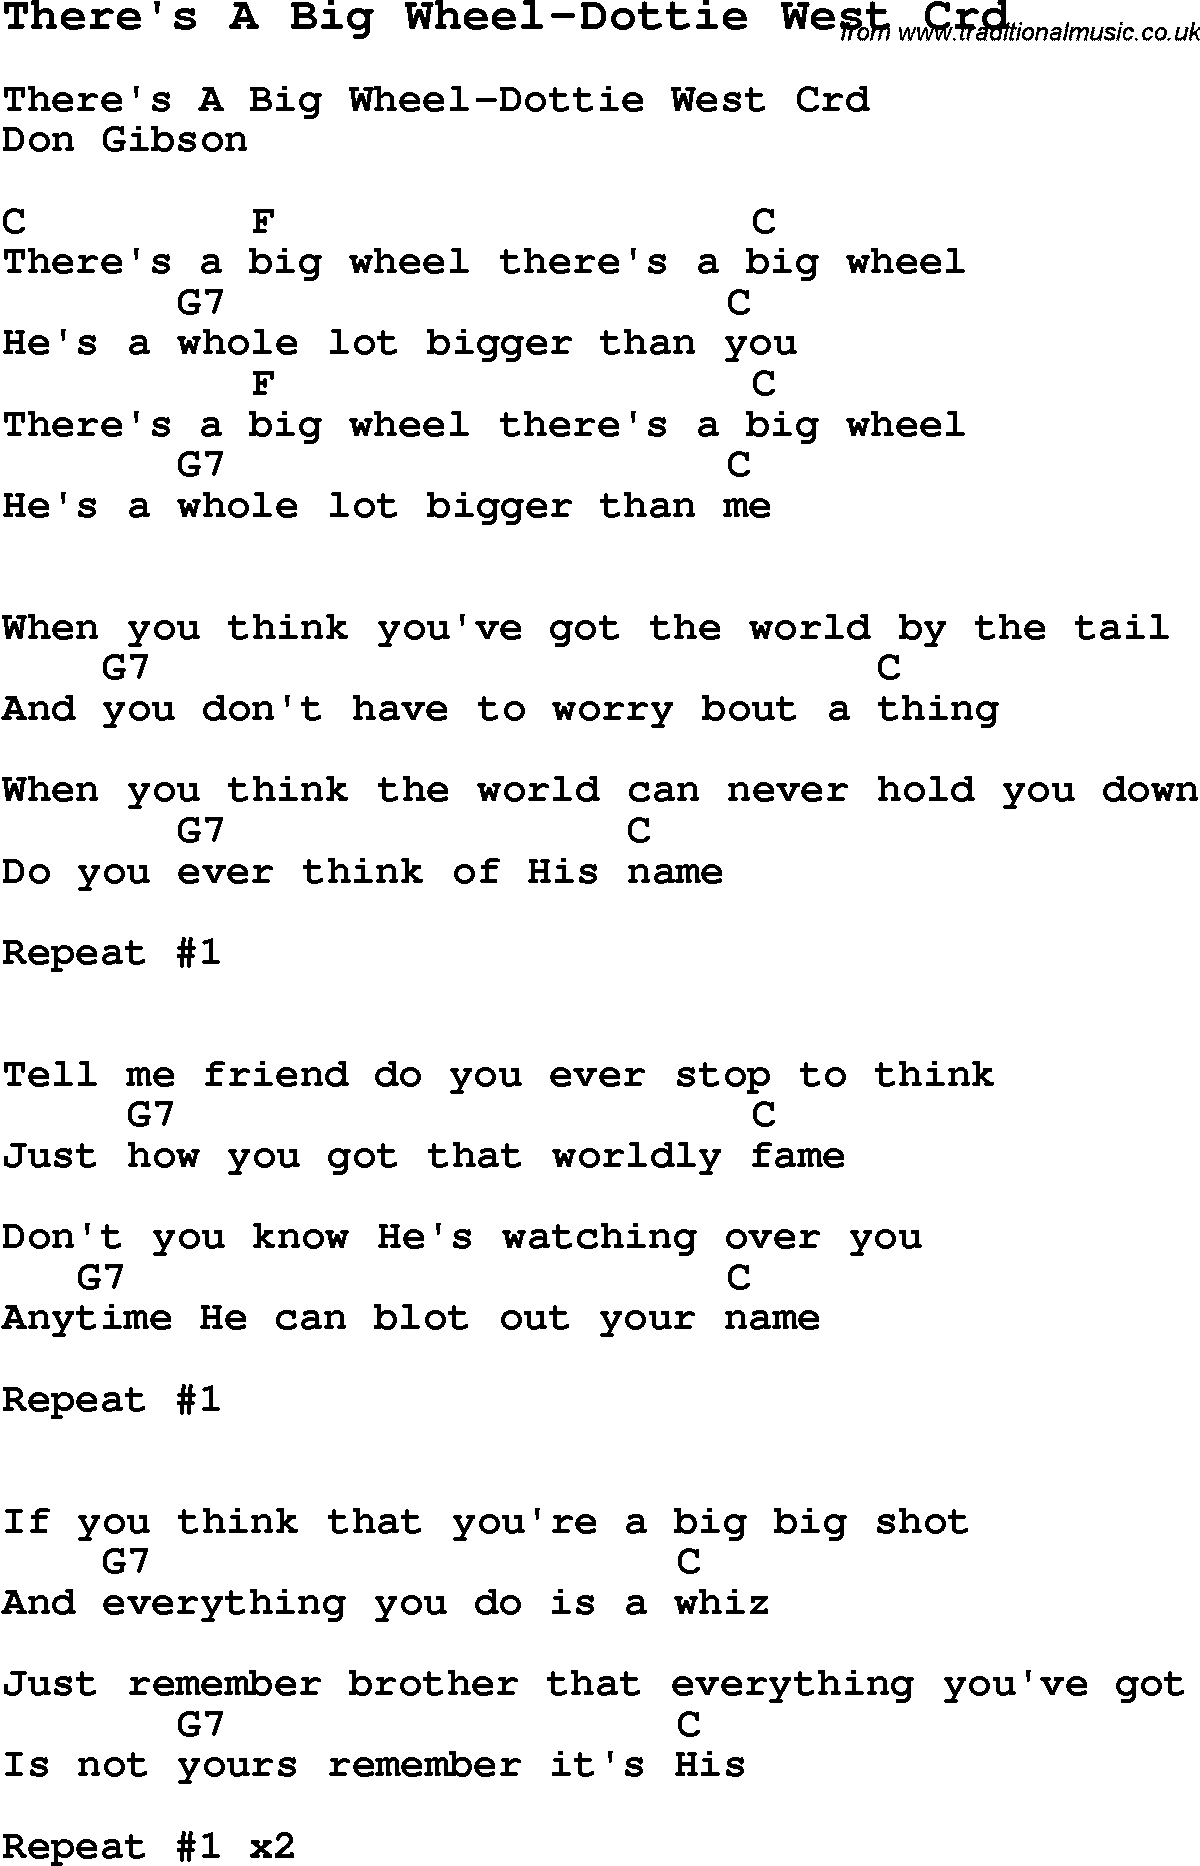 Skiffle Lyrics For Theres A Big Wheel Dottie West With Chords For